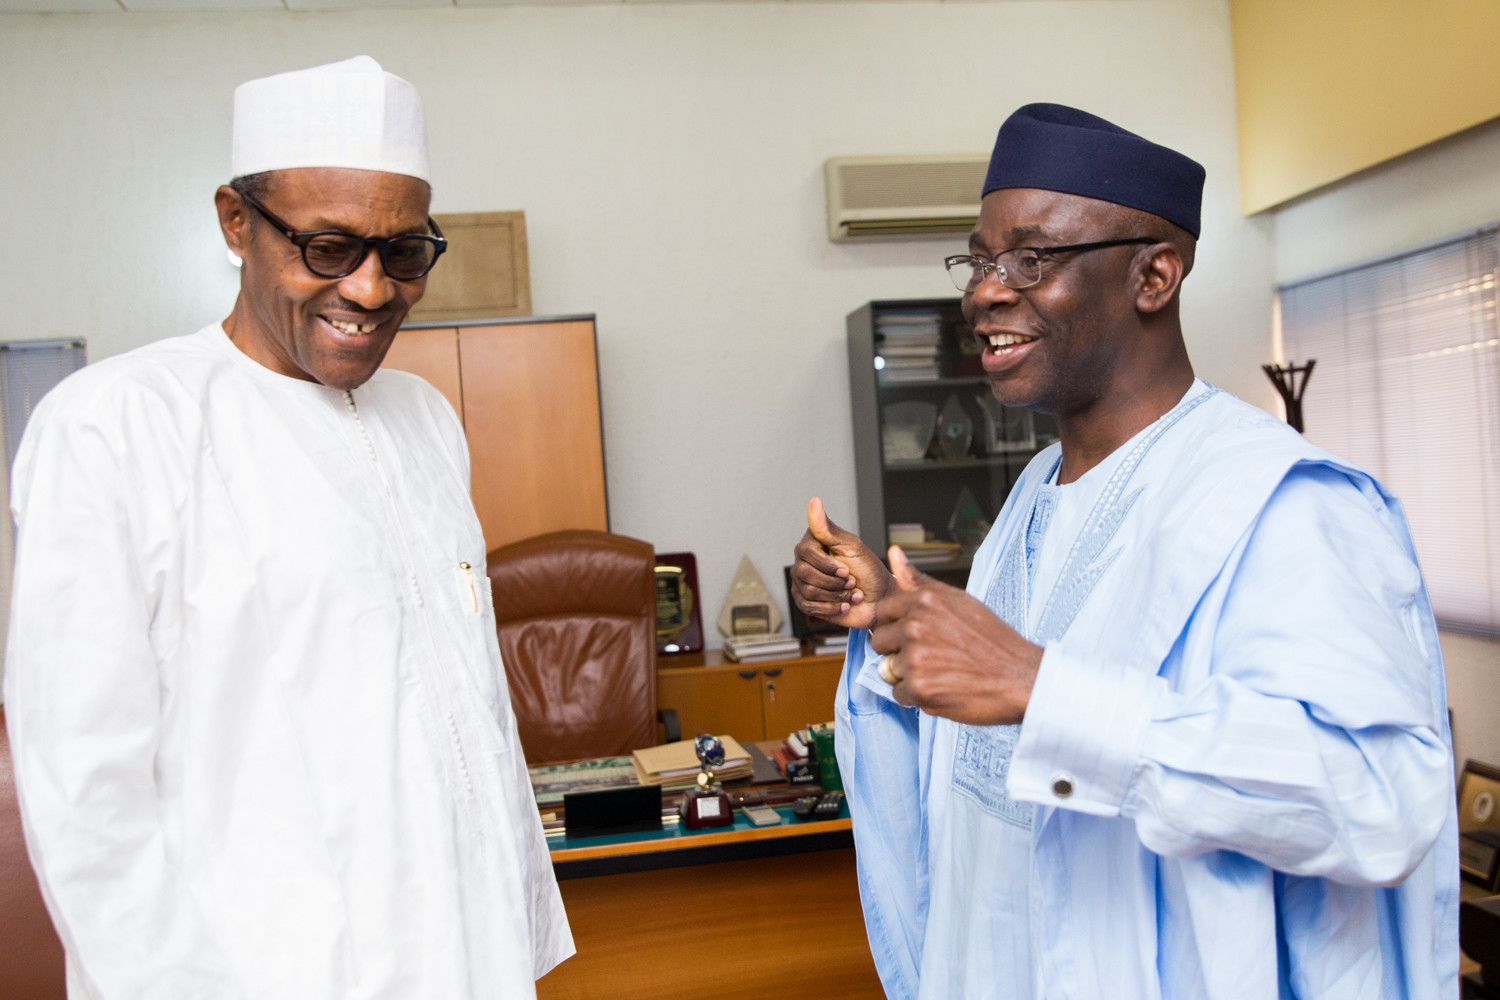 God should deliver Buhari from wicked counsels and counsellors who tell him life is sweet without giving him the reports from the streets - Pastor Tunde Bakare lindaikejisblog